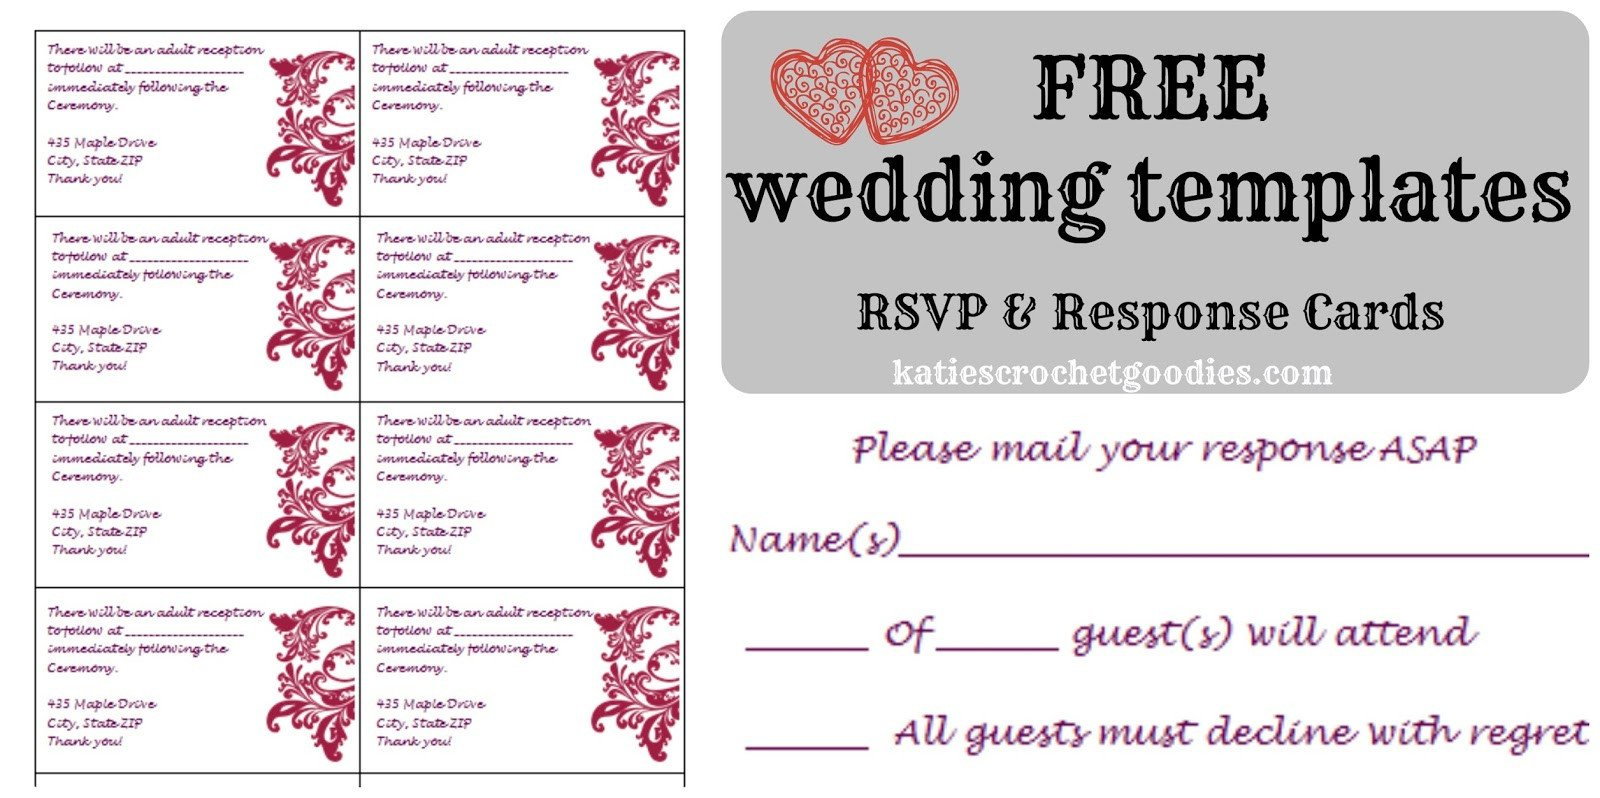 Free Printable Rsvp Cards Free Wedding Templates Rsvp & Reception Cards Katie S